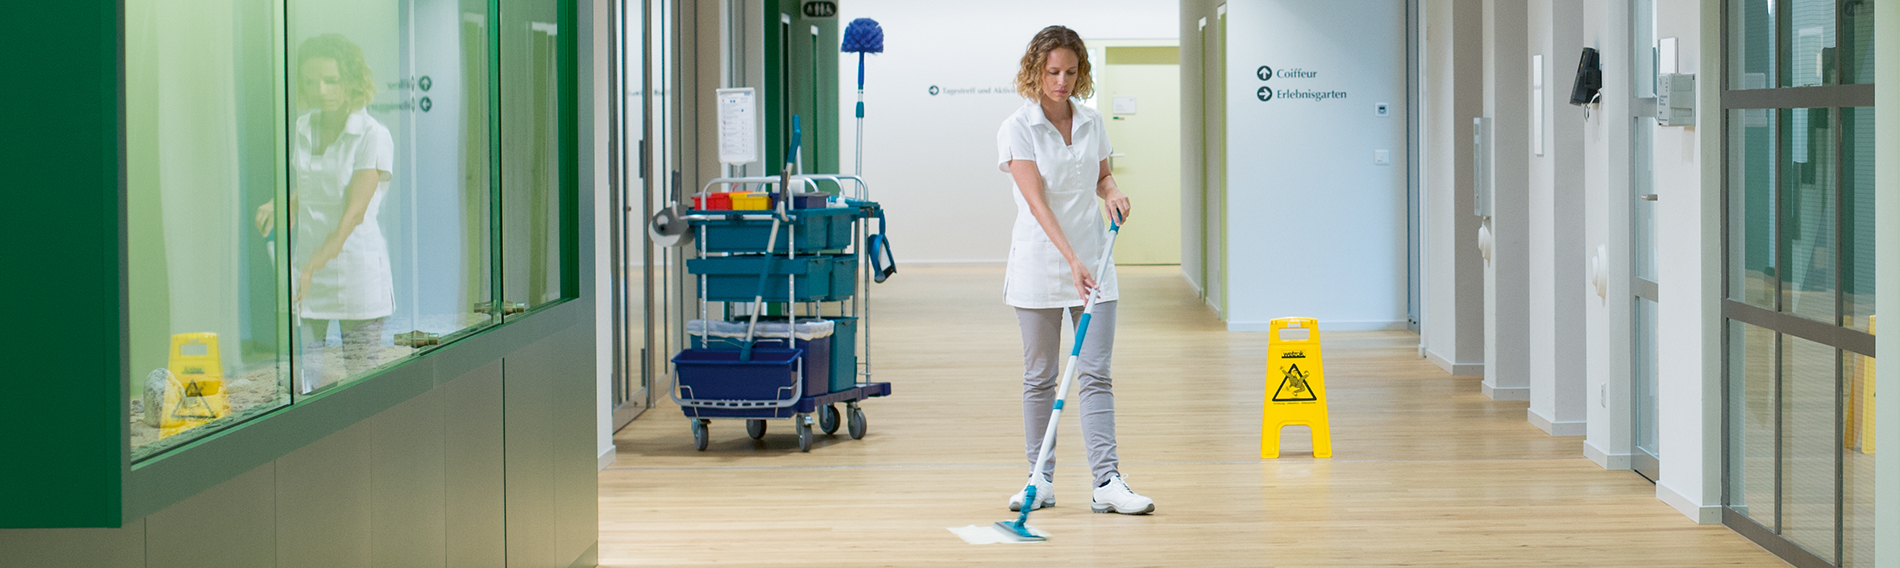 Adjusting the Handle on the Mopping Device Correctly